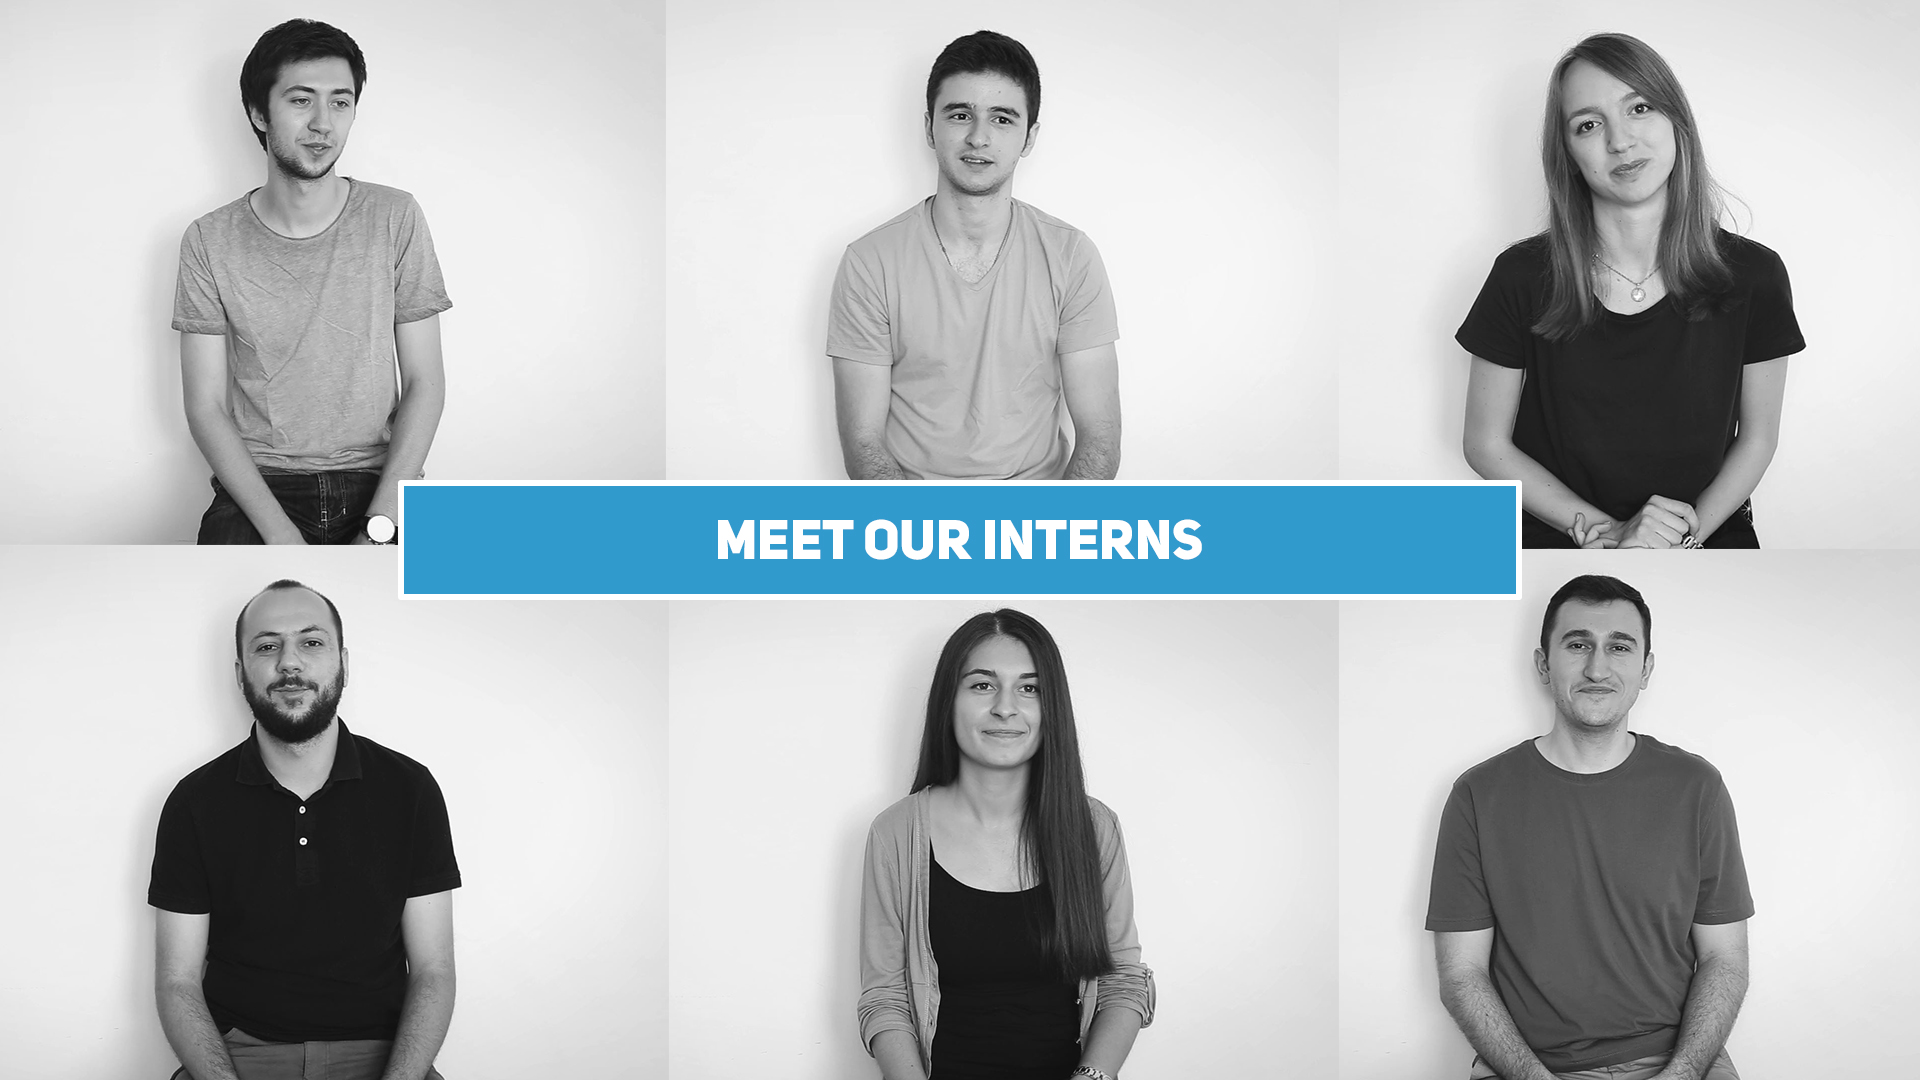 Meet Our Interns